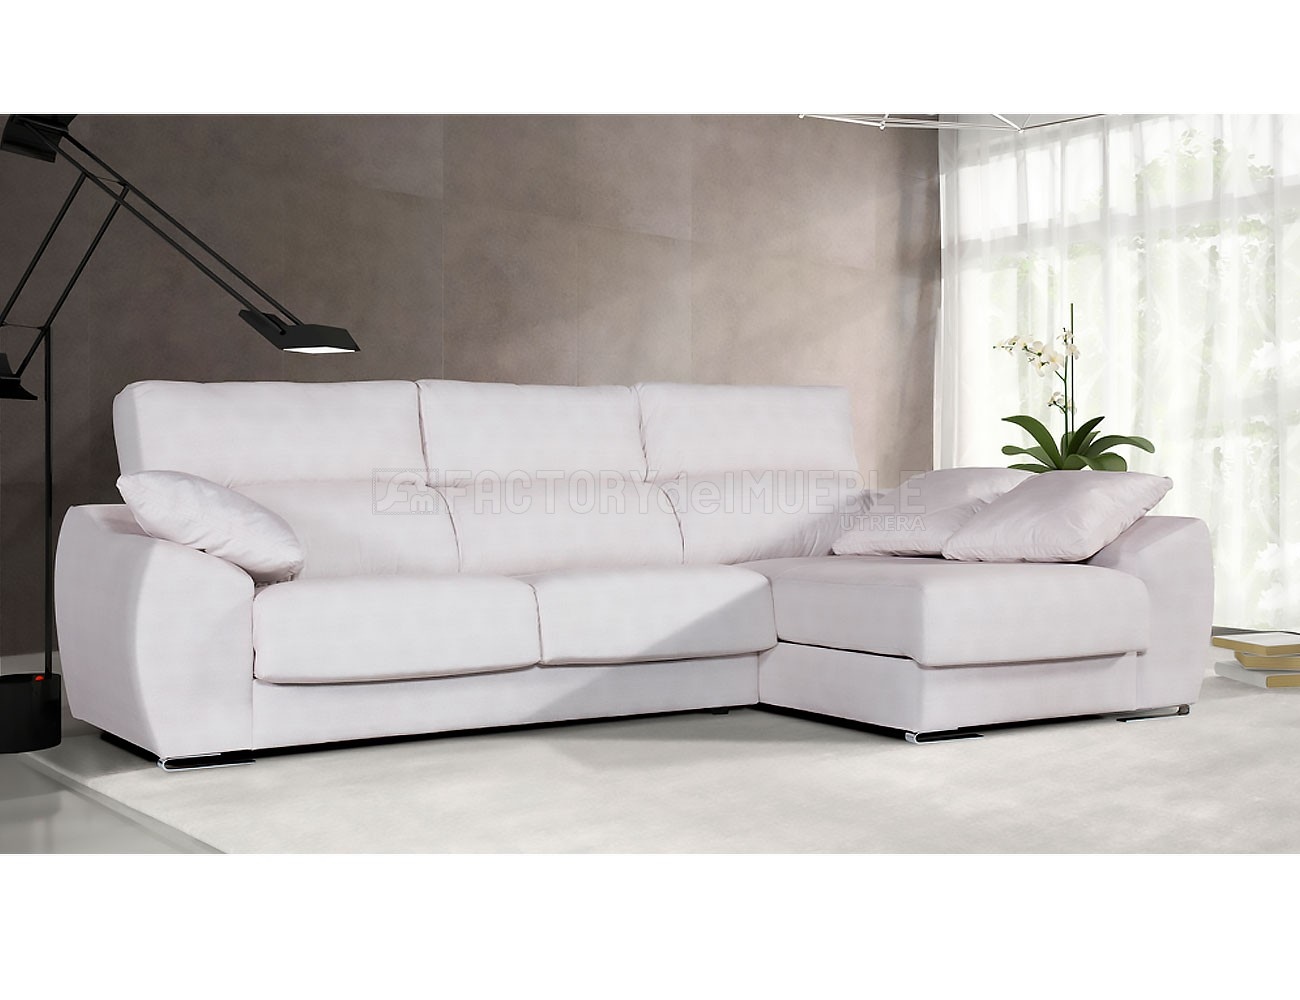 Sofa chaiselongue tosca1